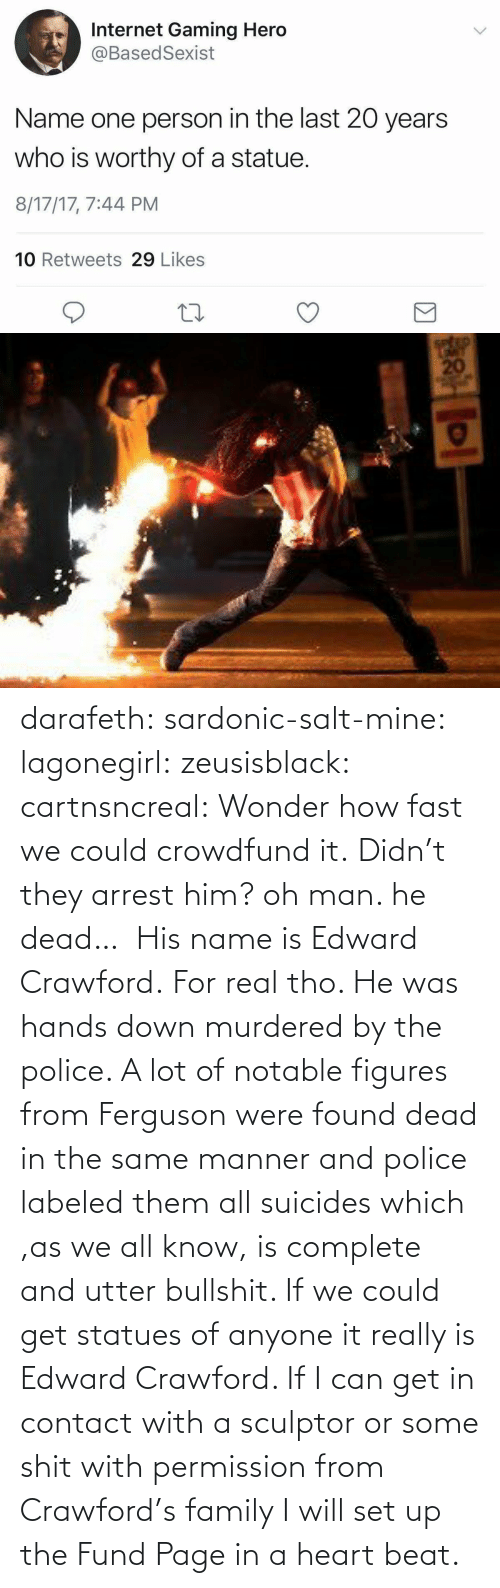 him: darafeth: sardonic-salt-mine:  lagonegirl:  zeusisblack:  cartnsncreal:   Wonder how fast we could crowdfund it.    Didn't they arrest him?  oh man. he dead…   His name is Edward Crawford.   For real tho. He was hands down murdered by the police. A lot of notable figures from Ferguson were found dead in the same manner and police labeled them all suicides which ,as we all know, is complete and utter bullshit.  If we could get statues of anyone it really is Edward Crawford. If I can get in contact with a sculptor or some shit with permission from Crawford's family I will set up the Fund Page in a heart beat.